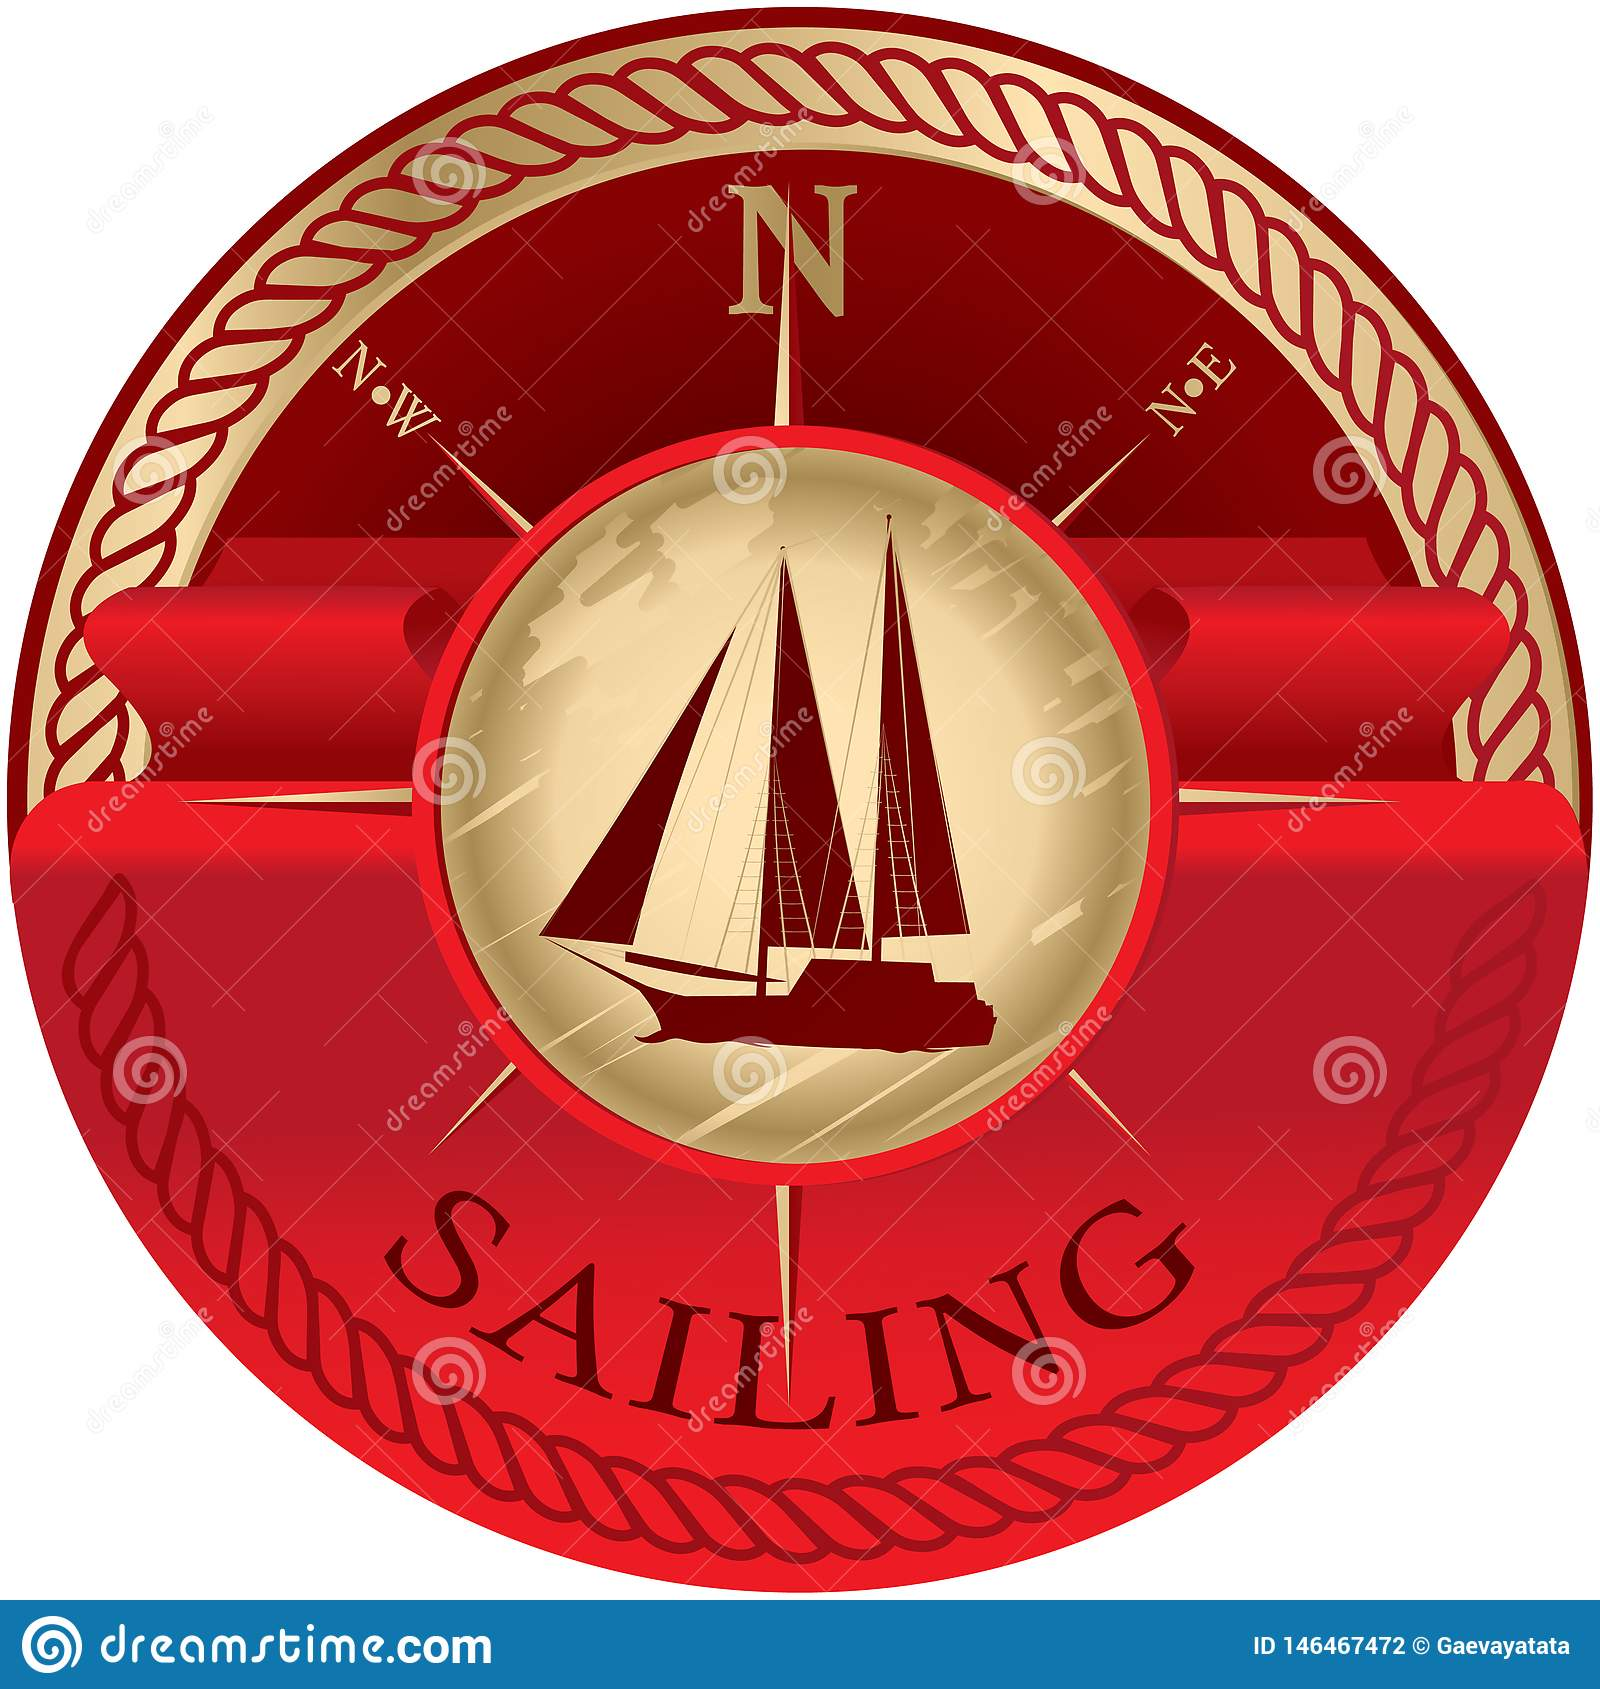 Round emblem with red ribbon for text and sailboat